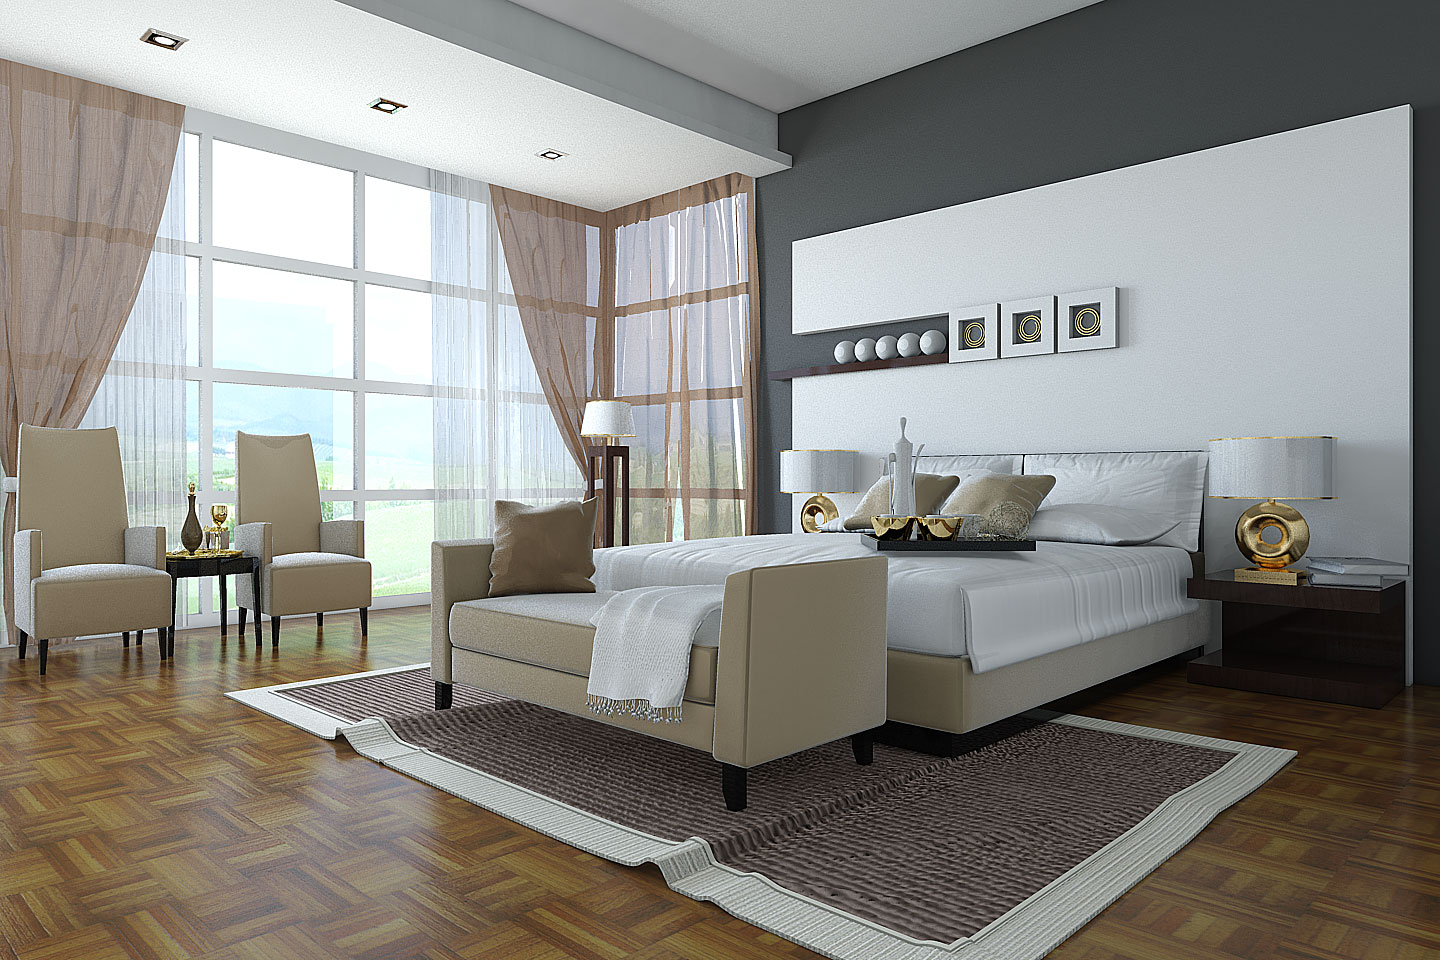 Outstanding Bedroom Designs 1440 x 960 · 311 kB · jpeg